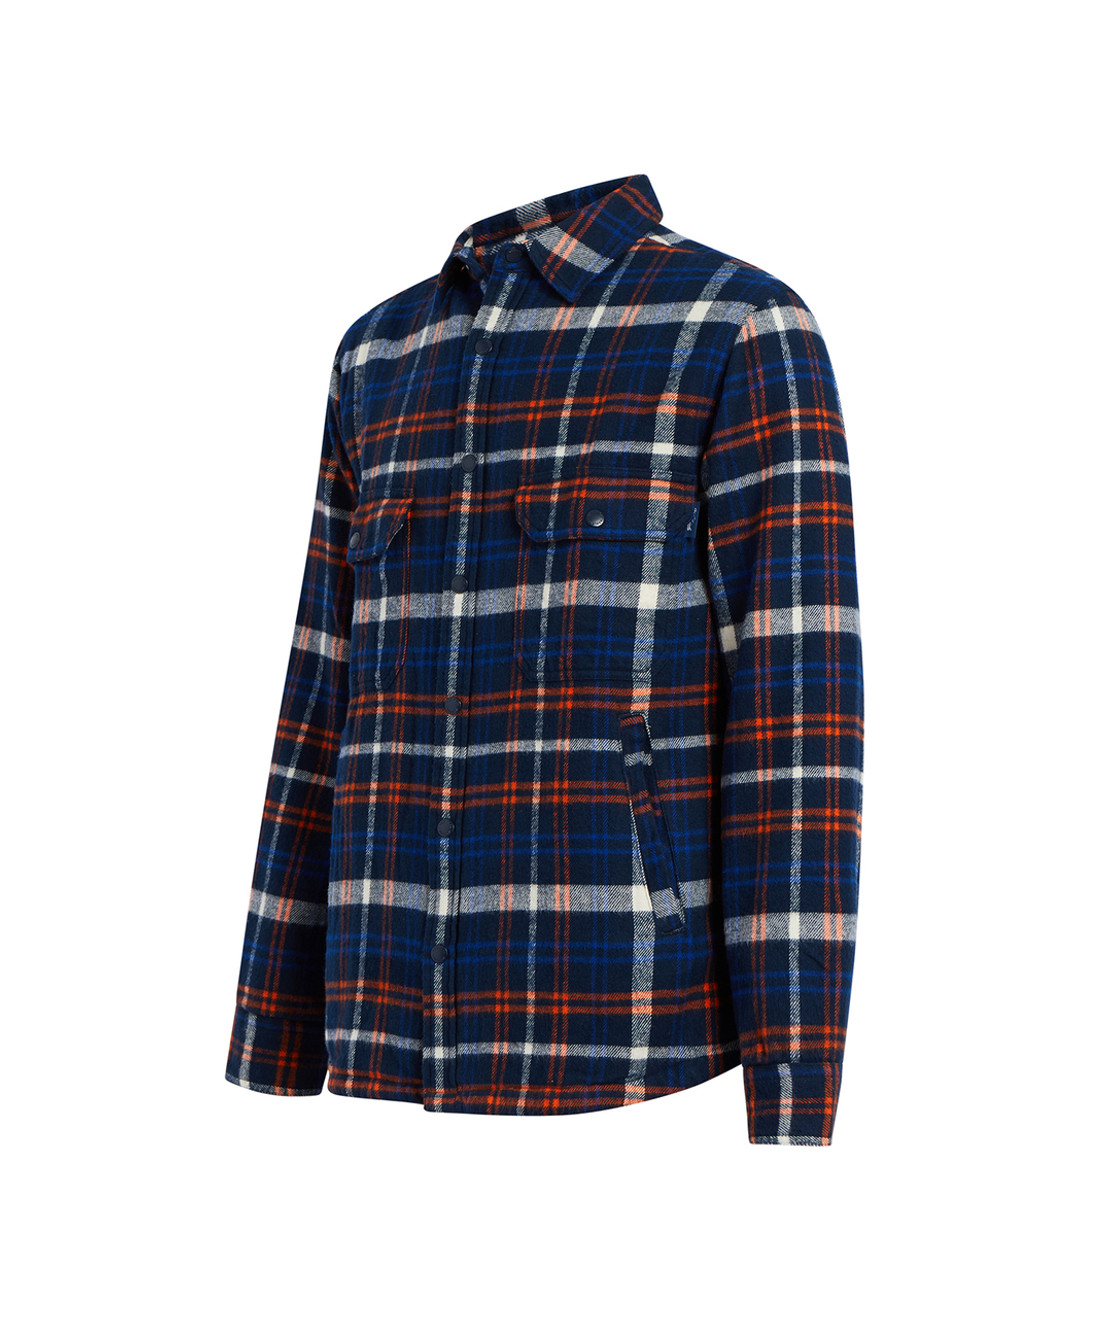 Men's Oxbow Bend Plaid Flannel Insulated Shirt Jac